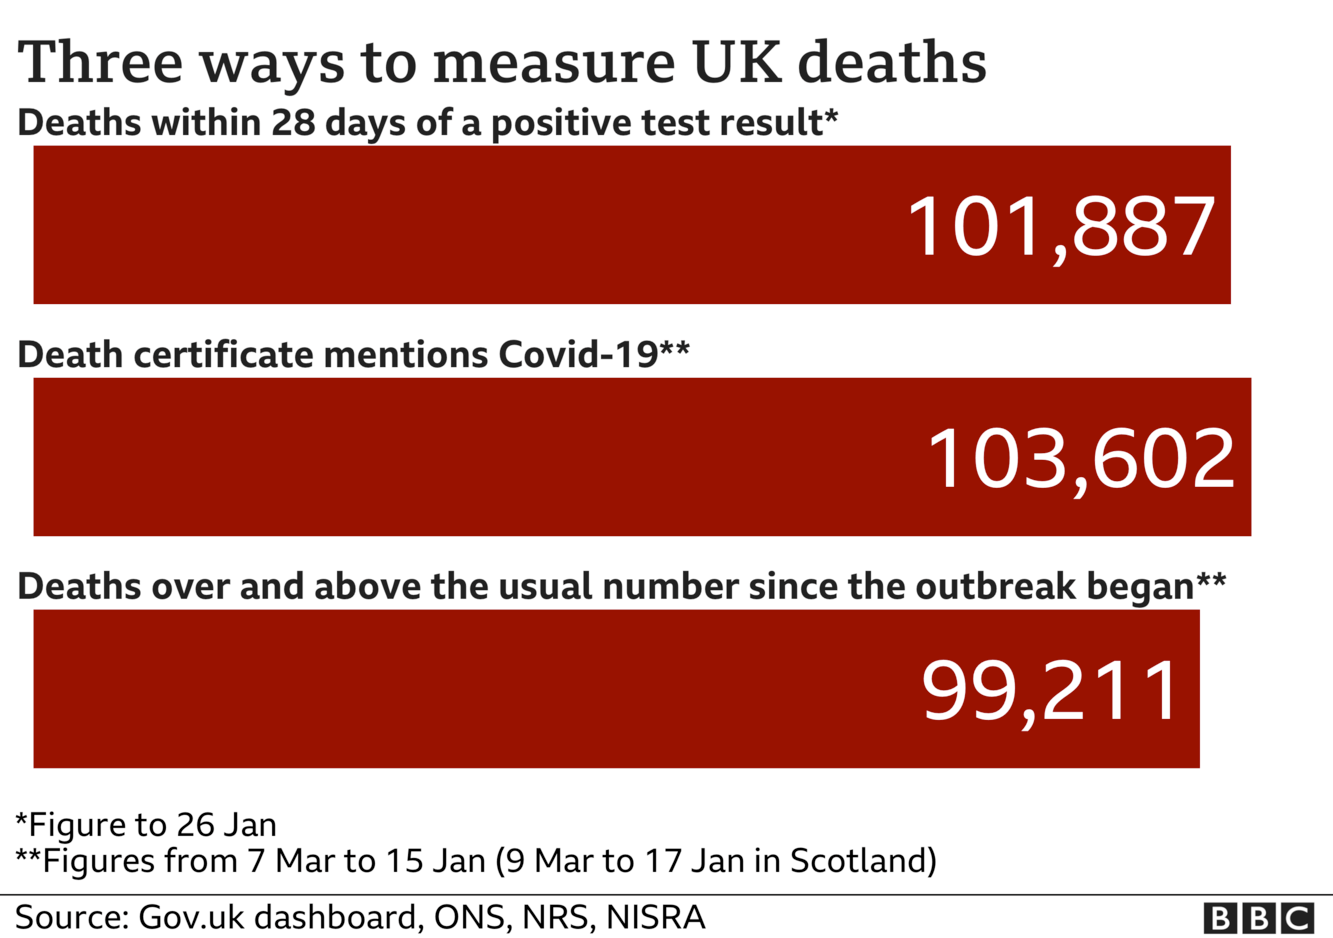 Chart showing three different totals for coronavirus deaths - the government measures all deaths within 28 days of a positive test, that total is 101,887. The ONS includes all deaths where coronavirus was mentioned on the death certificate, that total is 103,602 and the final total includes all deaths over and above the average for the time of year and that total is now 99,211